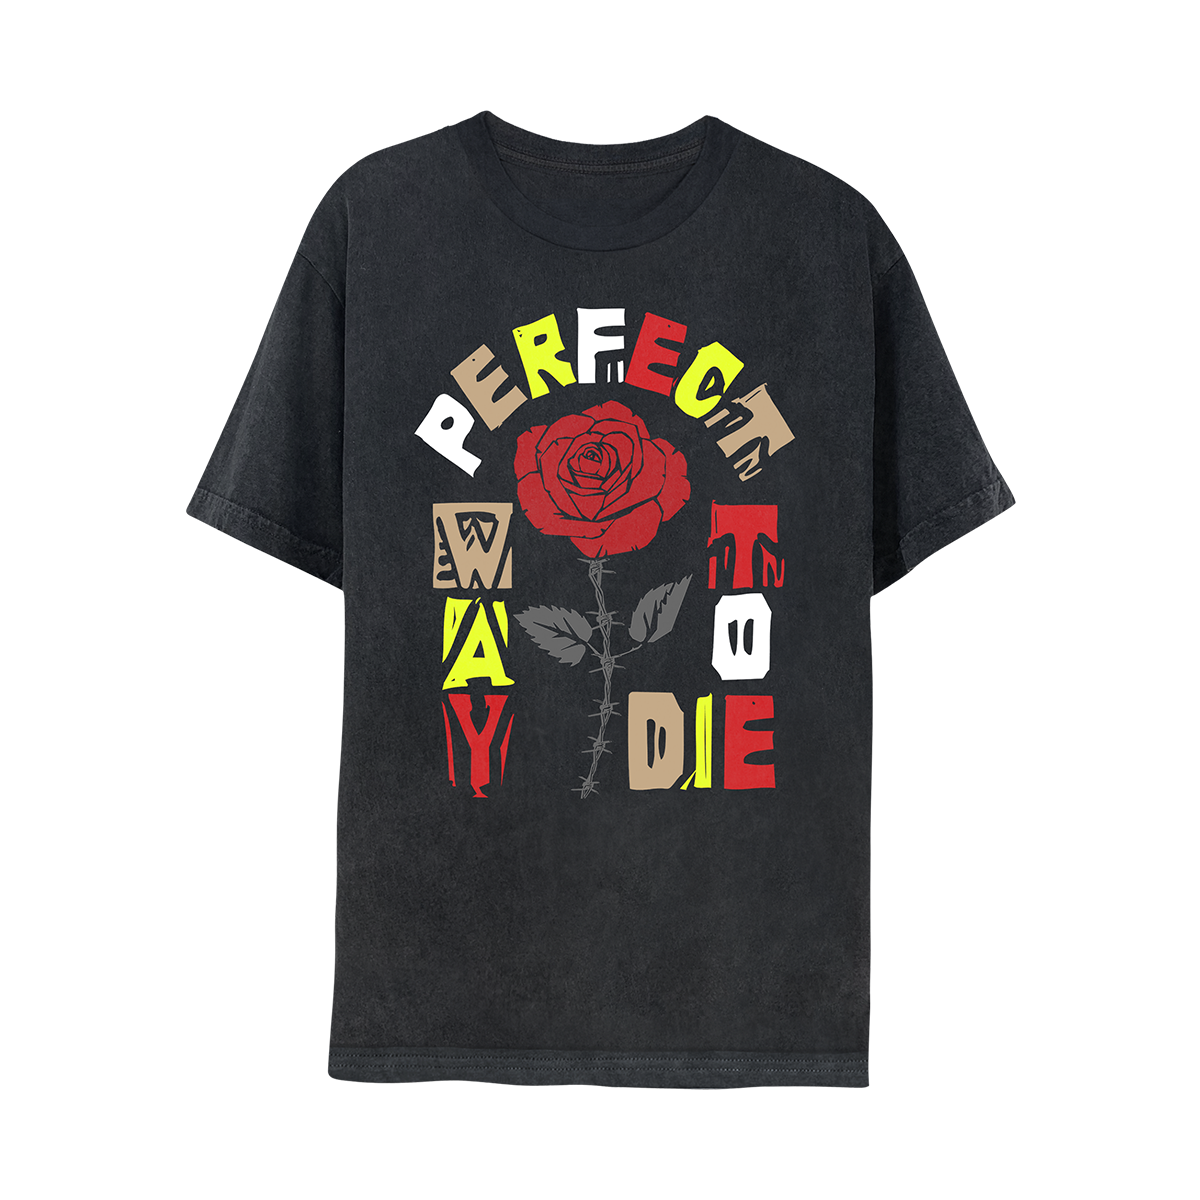 Perfect Way To Die Tee - Black